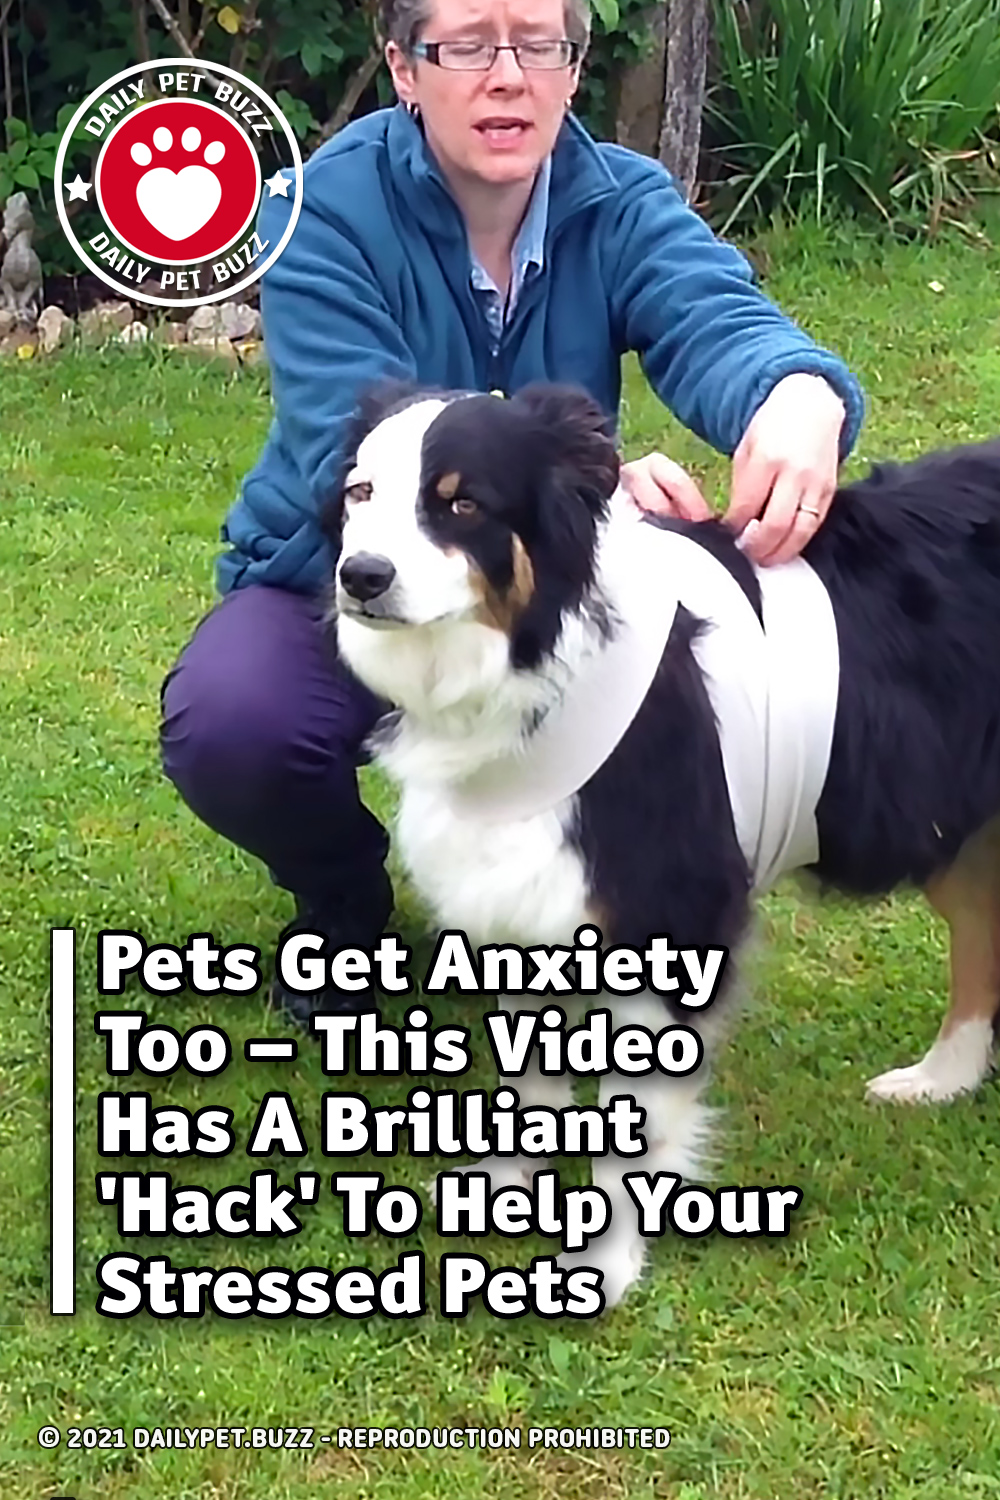 Pets Get Anxiety Too – This Video Has A Brilliant \'Hack\' To Help Your Stressed Pets